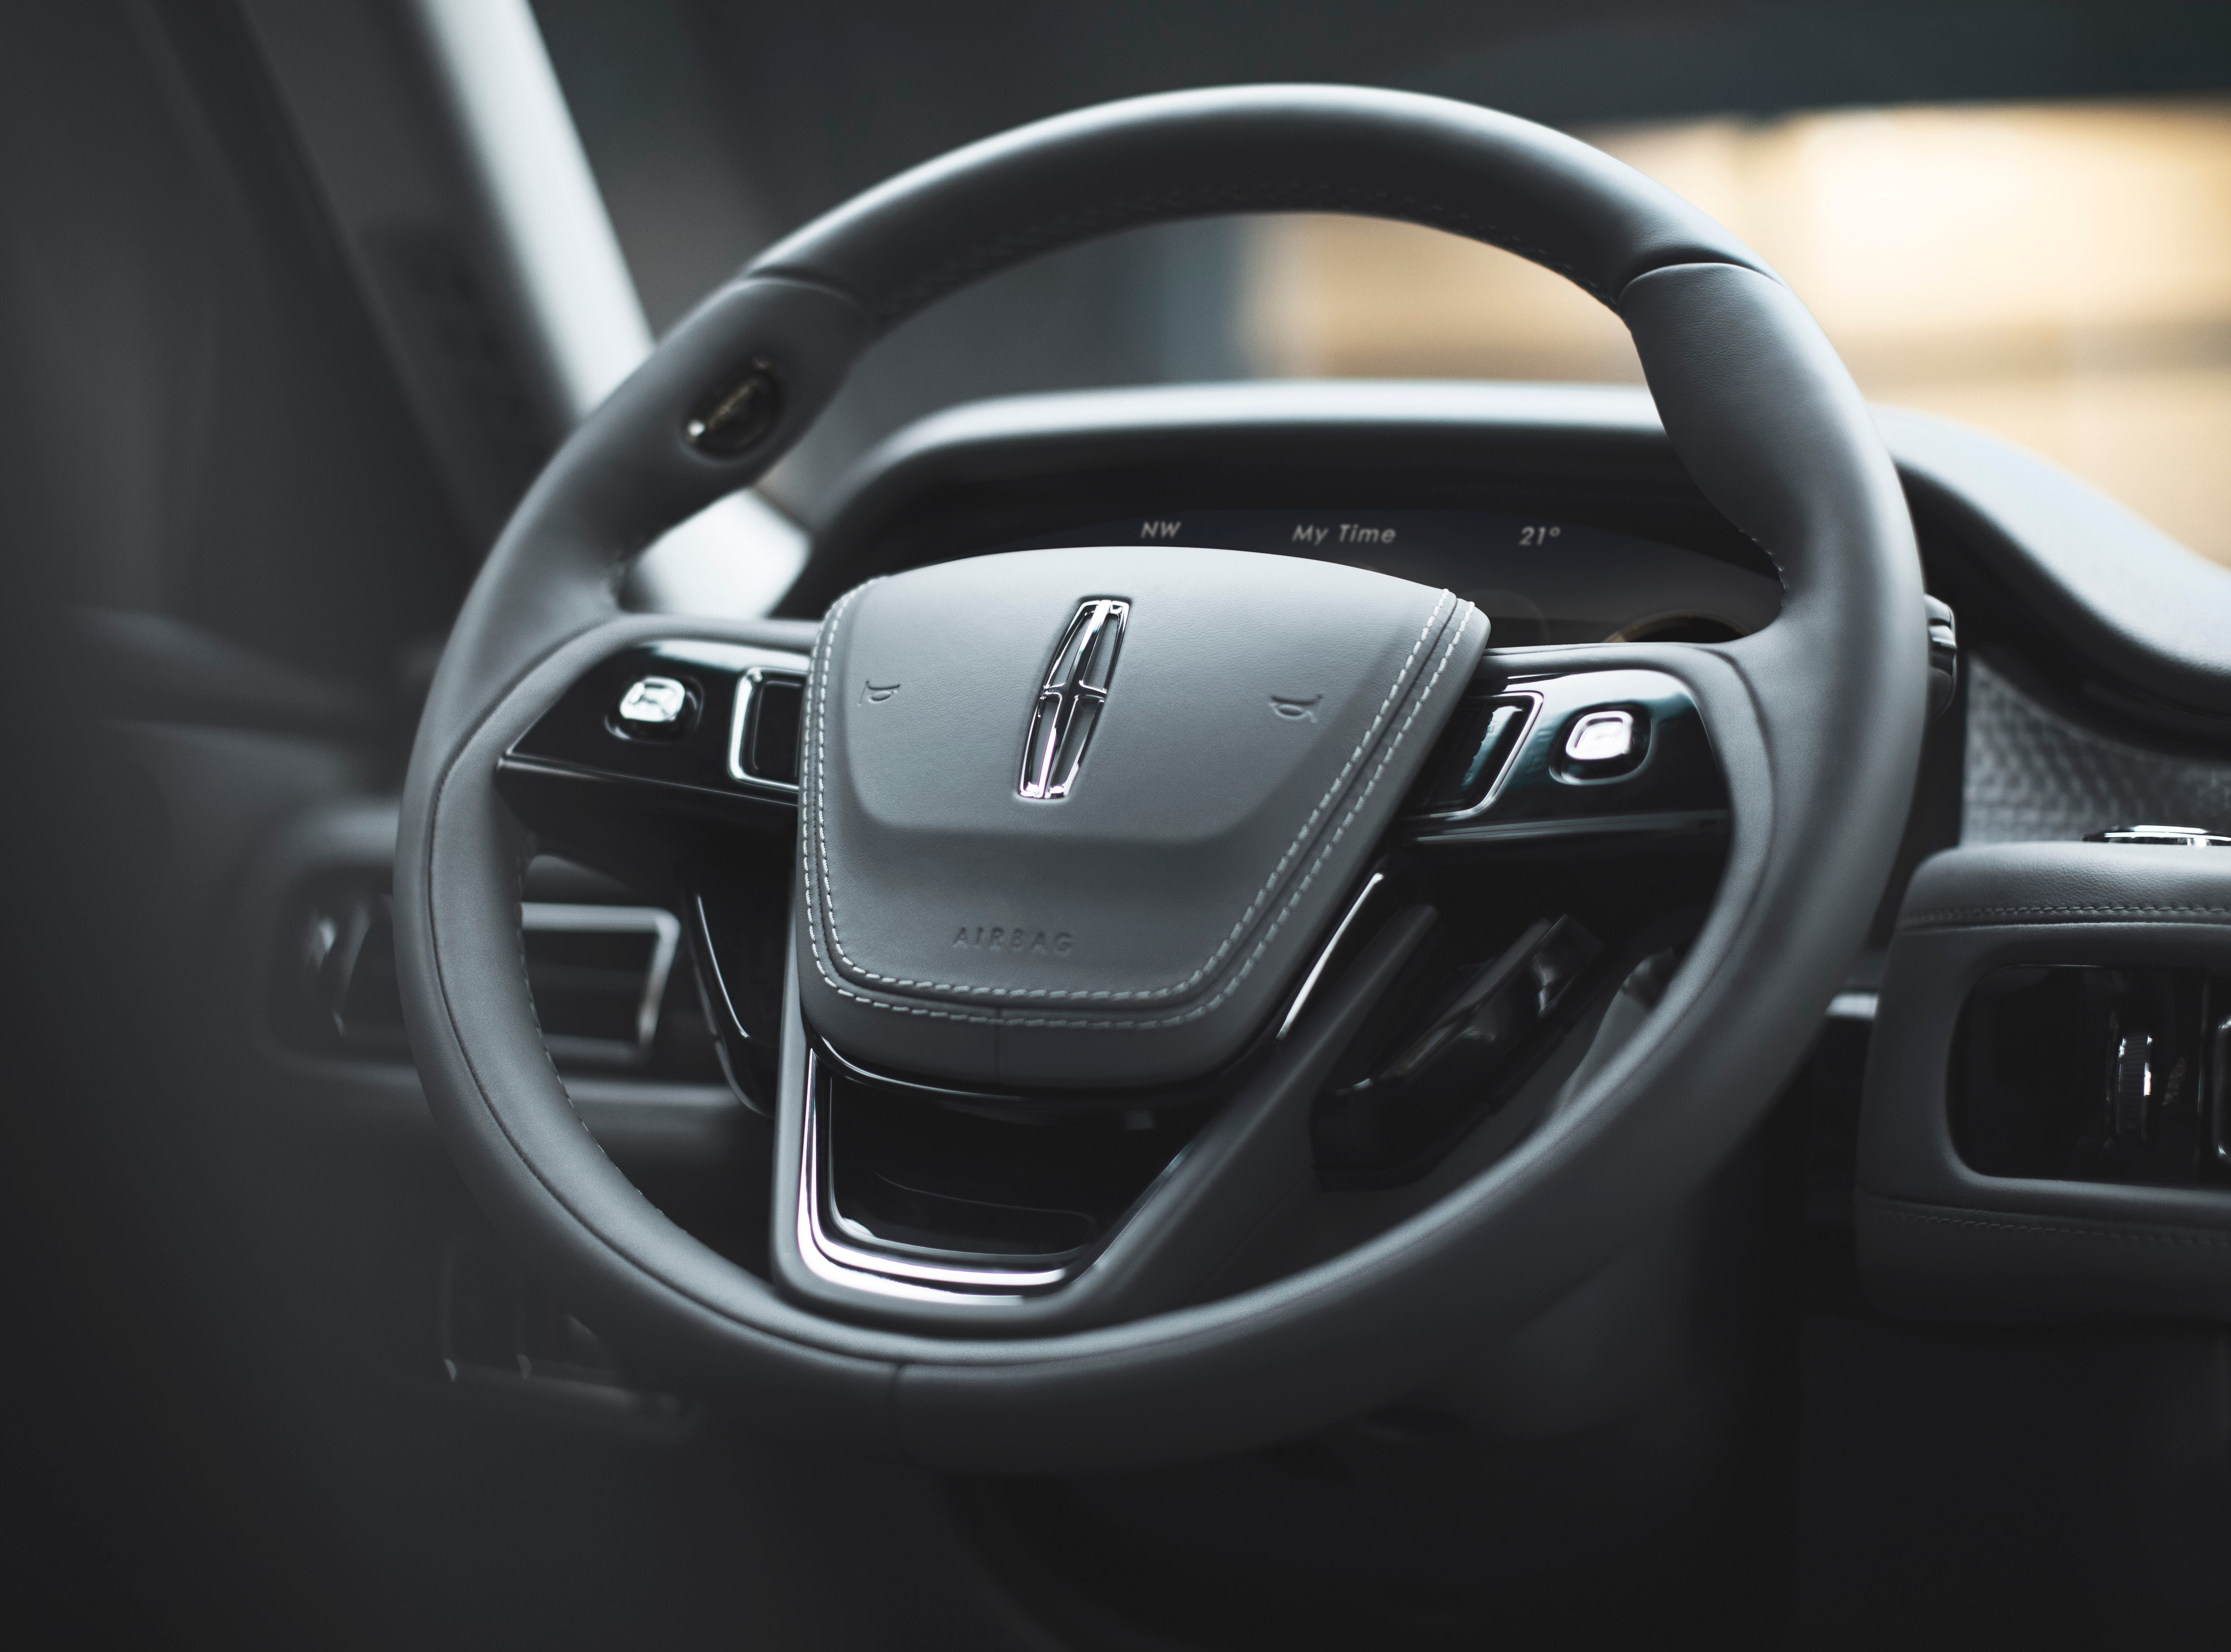 An ergonomically advanced steering wheel is intended for ultimate ease of use and customization; only subtle thumb movements at the 10 o'clock position are needed to access the voice command button. The steering wheel features streamlined, four-way switches at strategic positions to control music, phone and navigation functions.